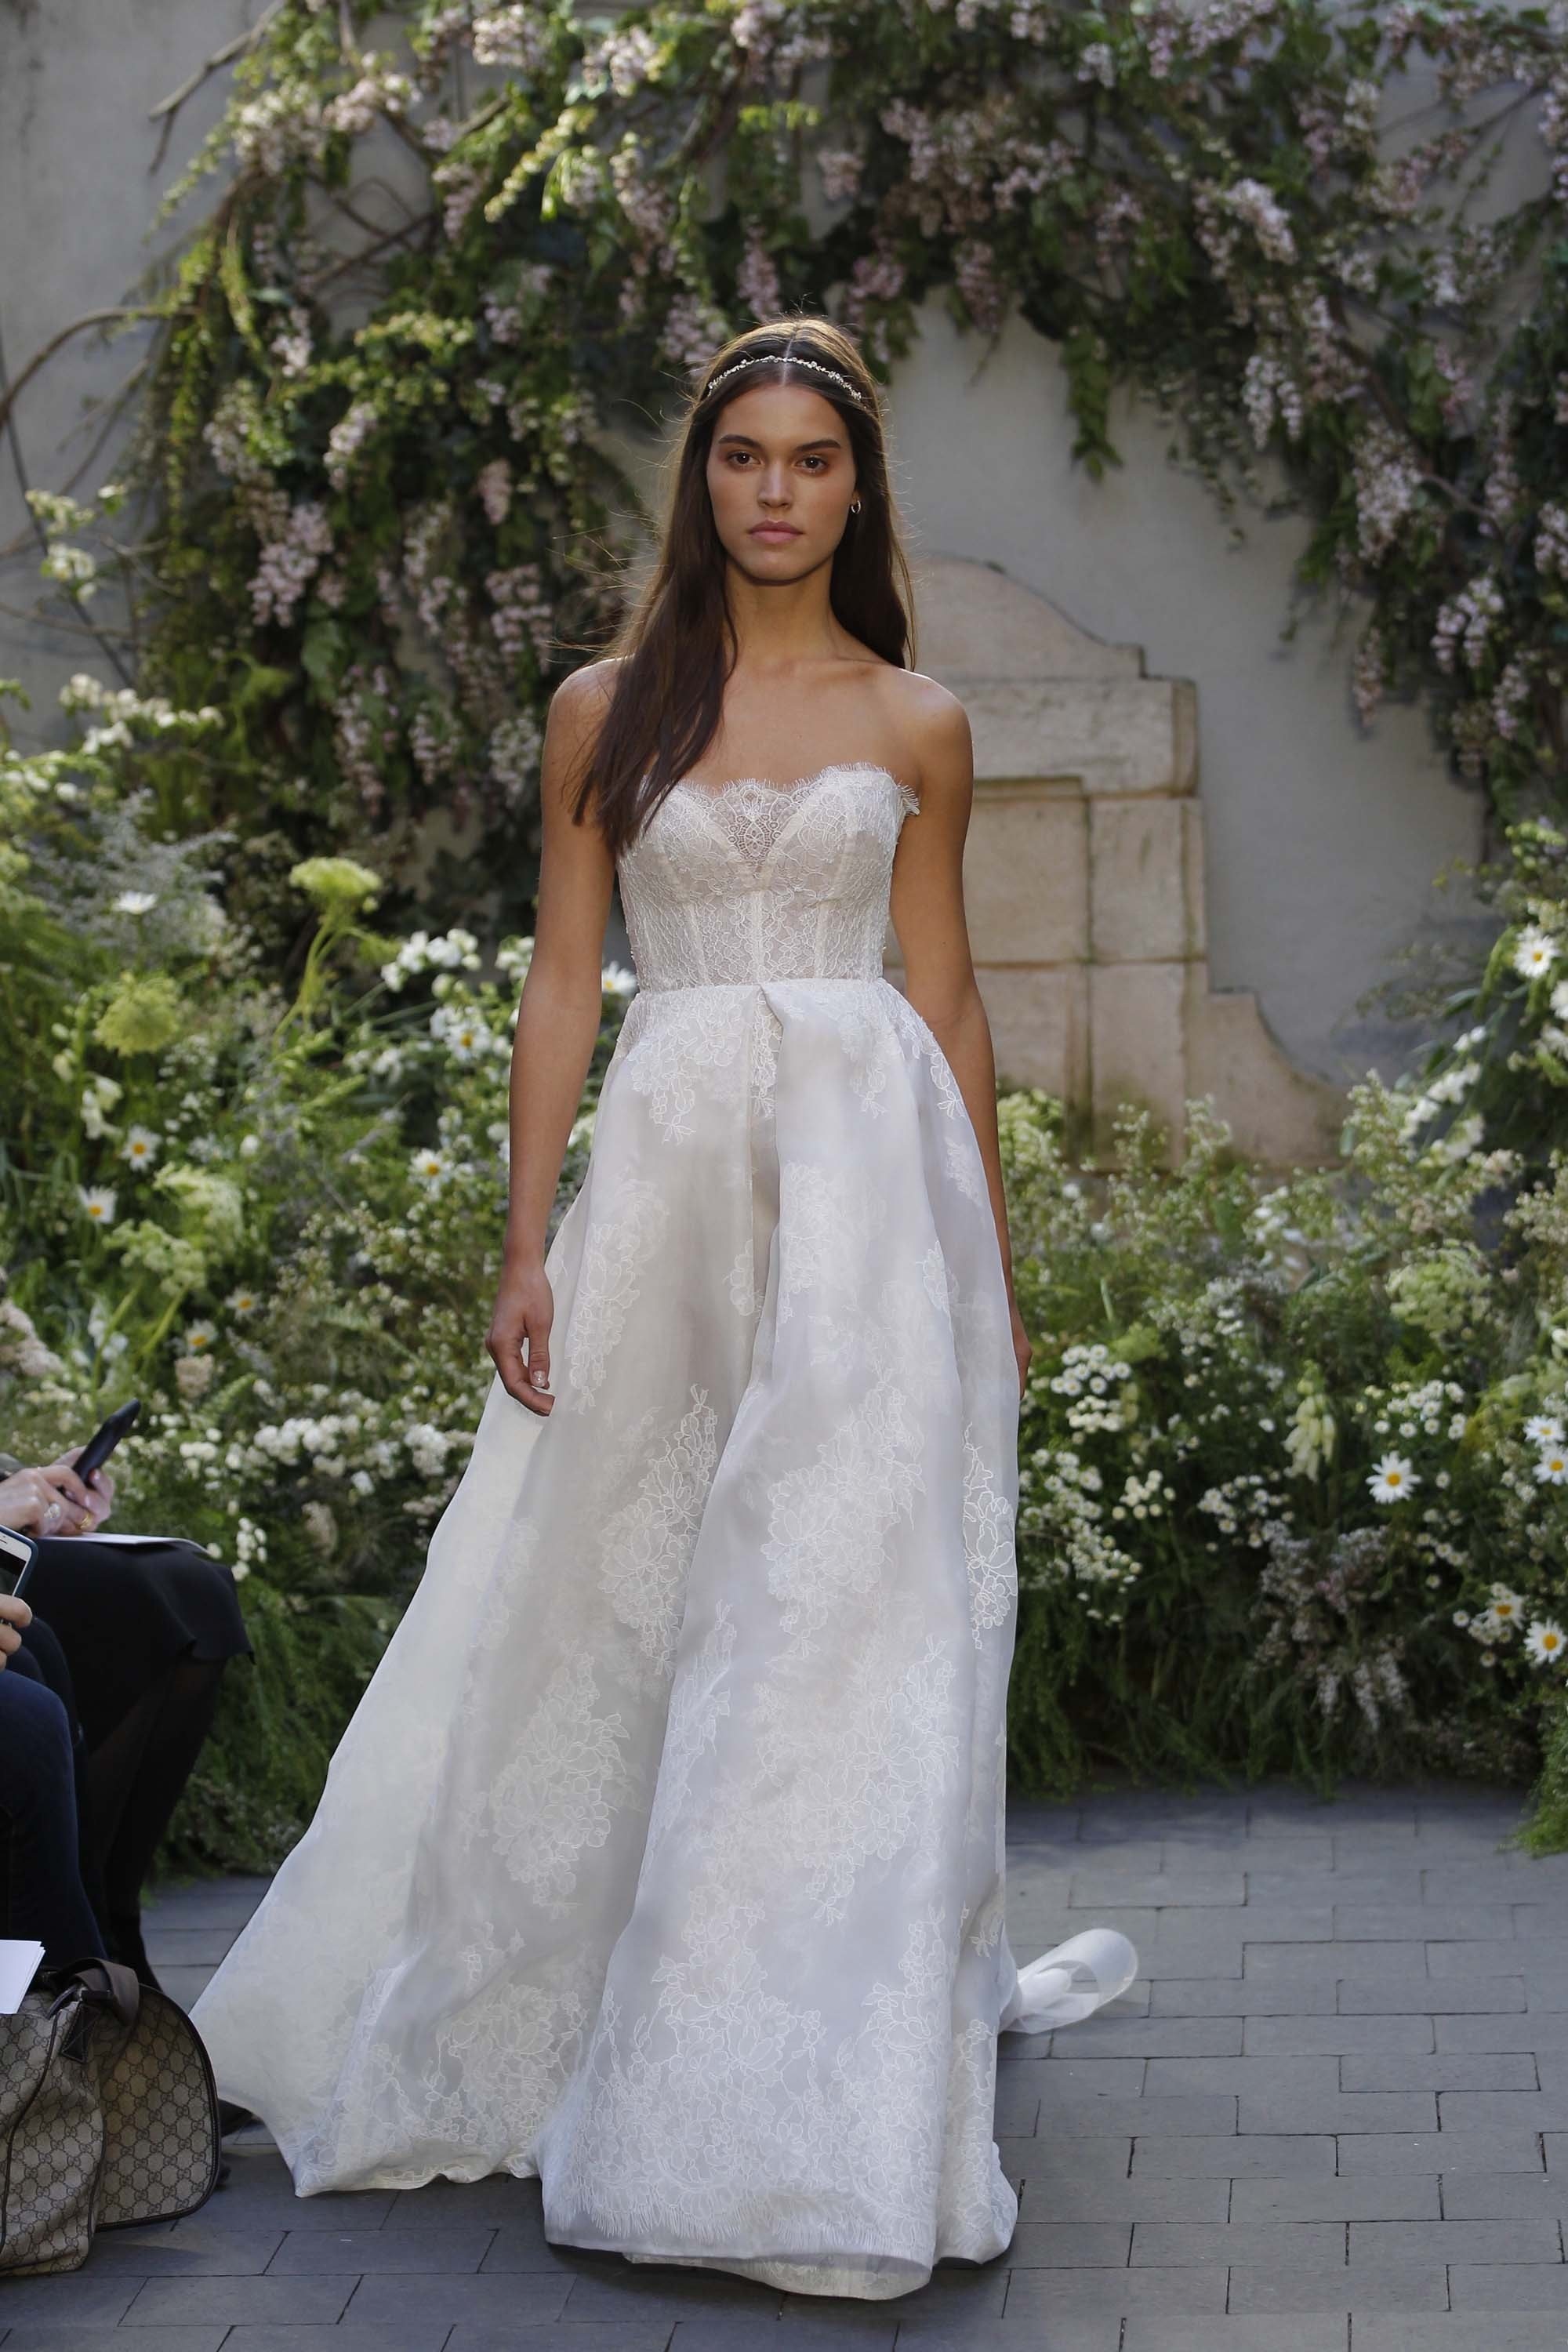 14-monique-lhuillier-bridal-spring-17.jpg